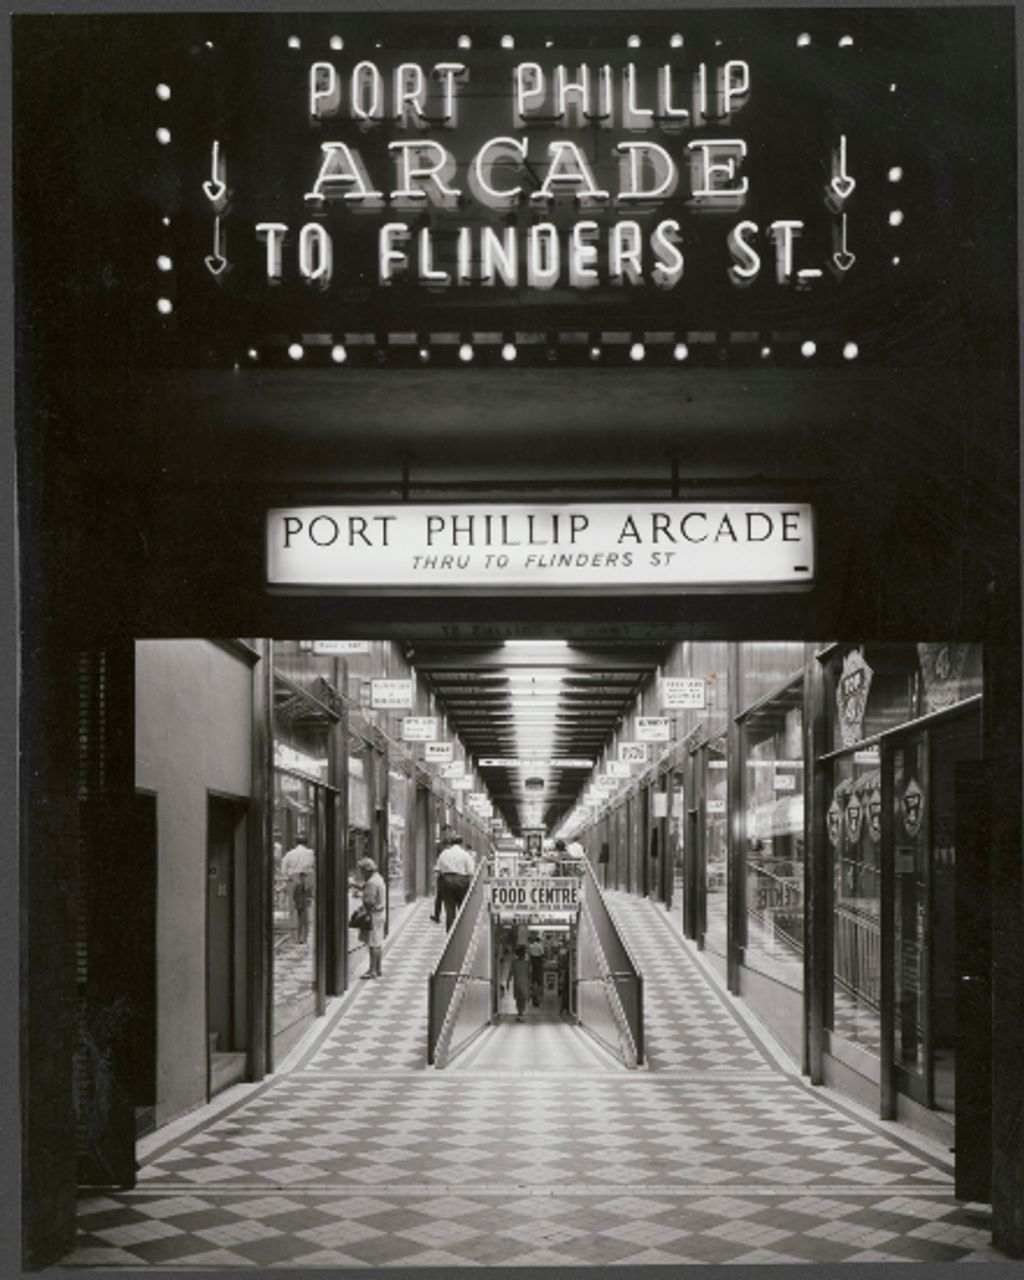 A black and white photo of an old arcade